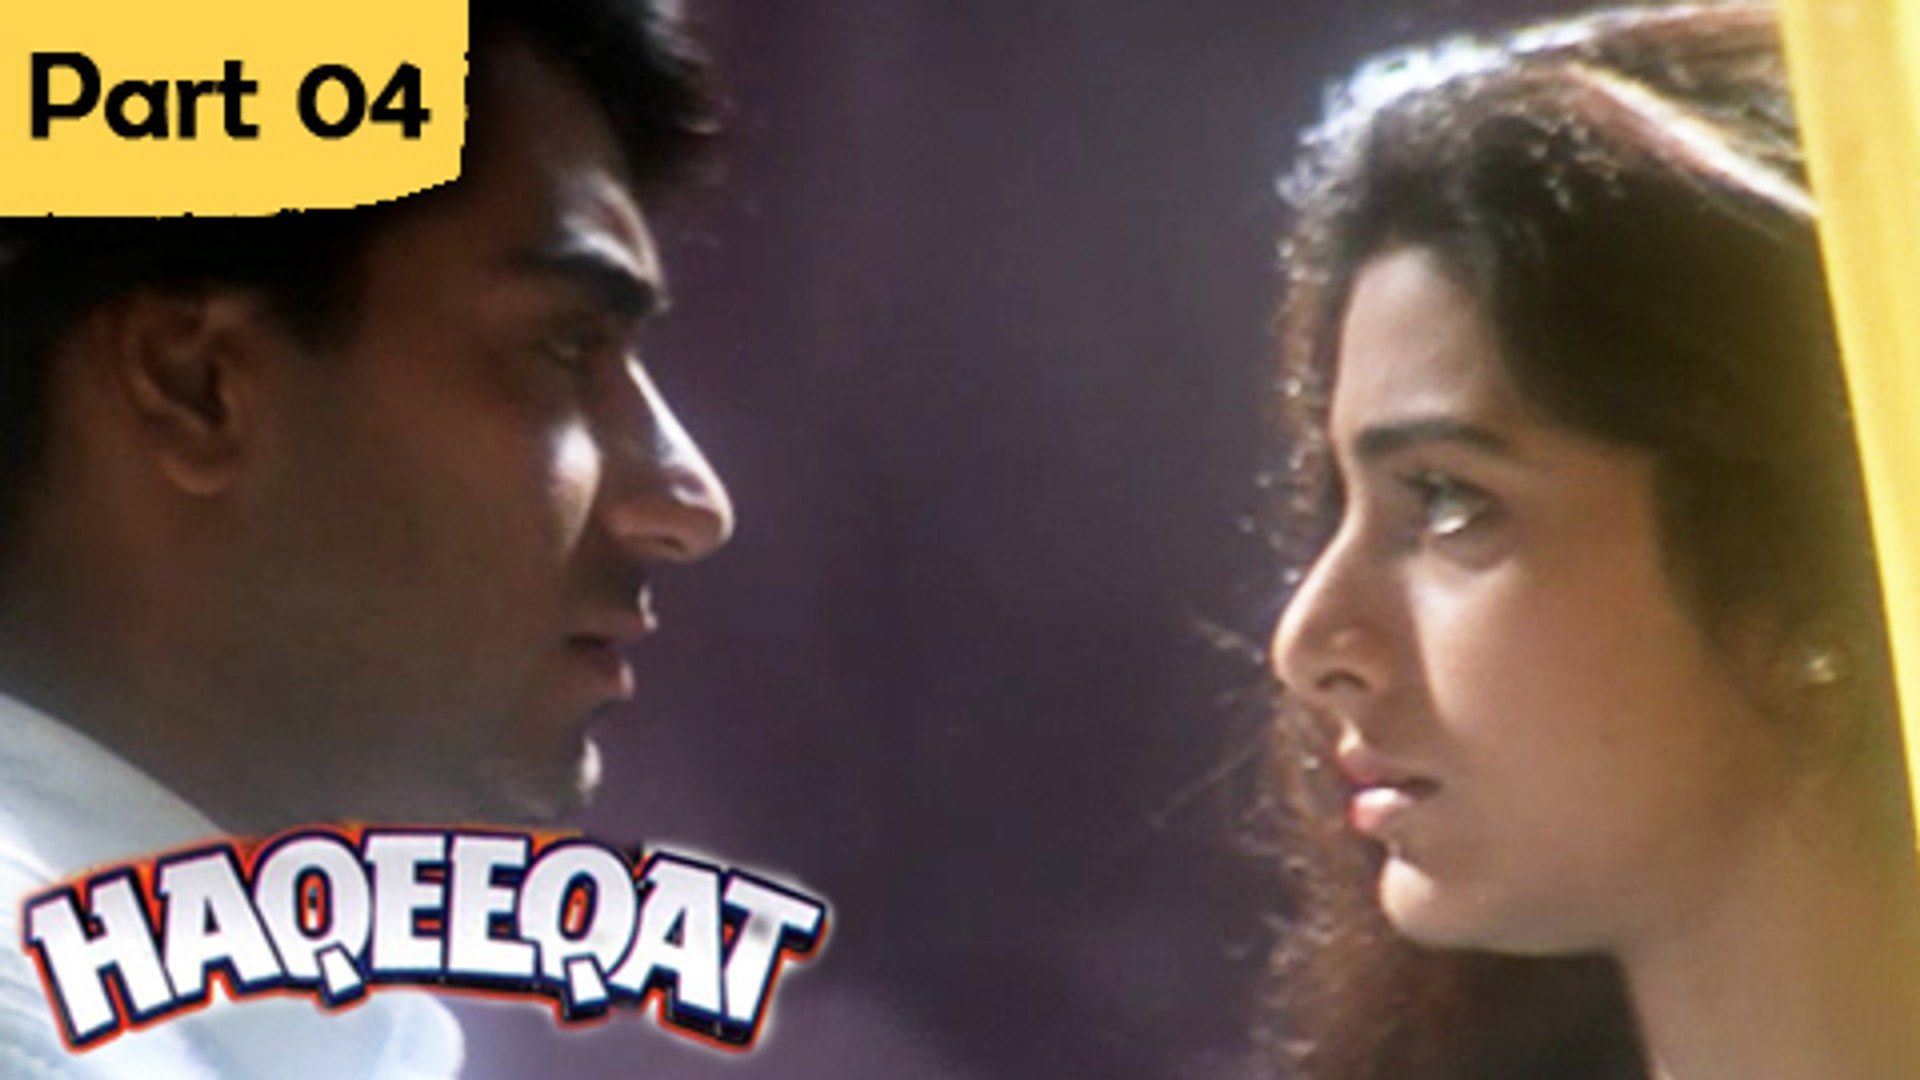 Haqeeqat - Part 04/12 - Bollywood action romantic super hit Hindi movie - Ajay devgan, Tabu